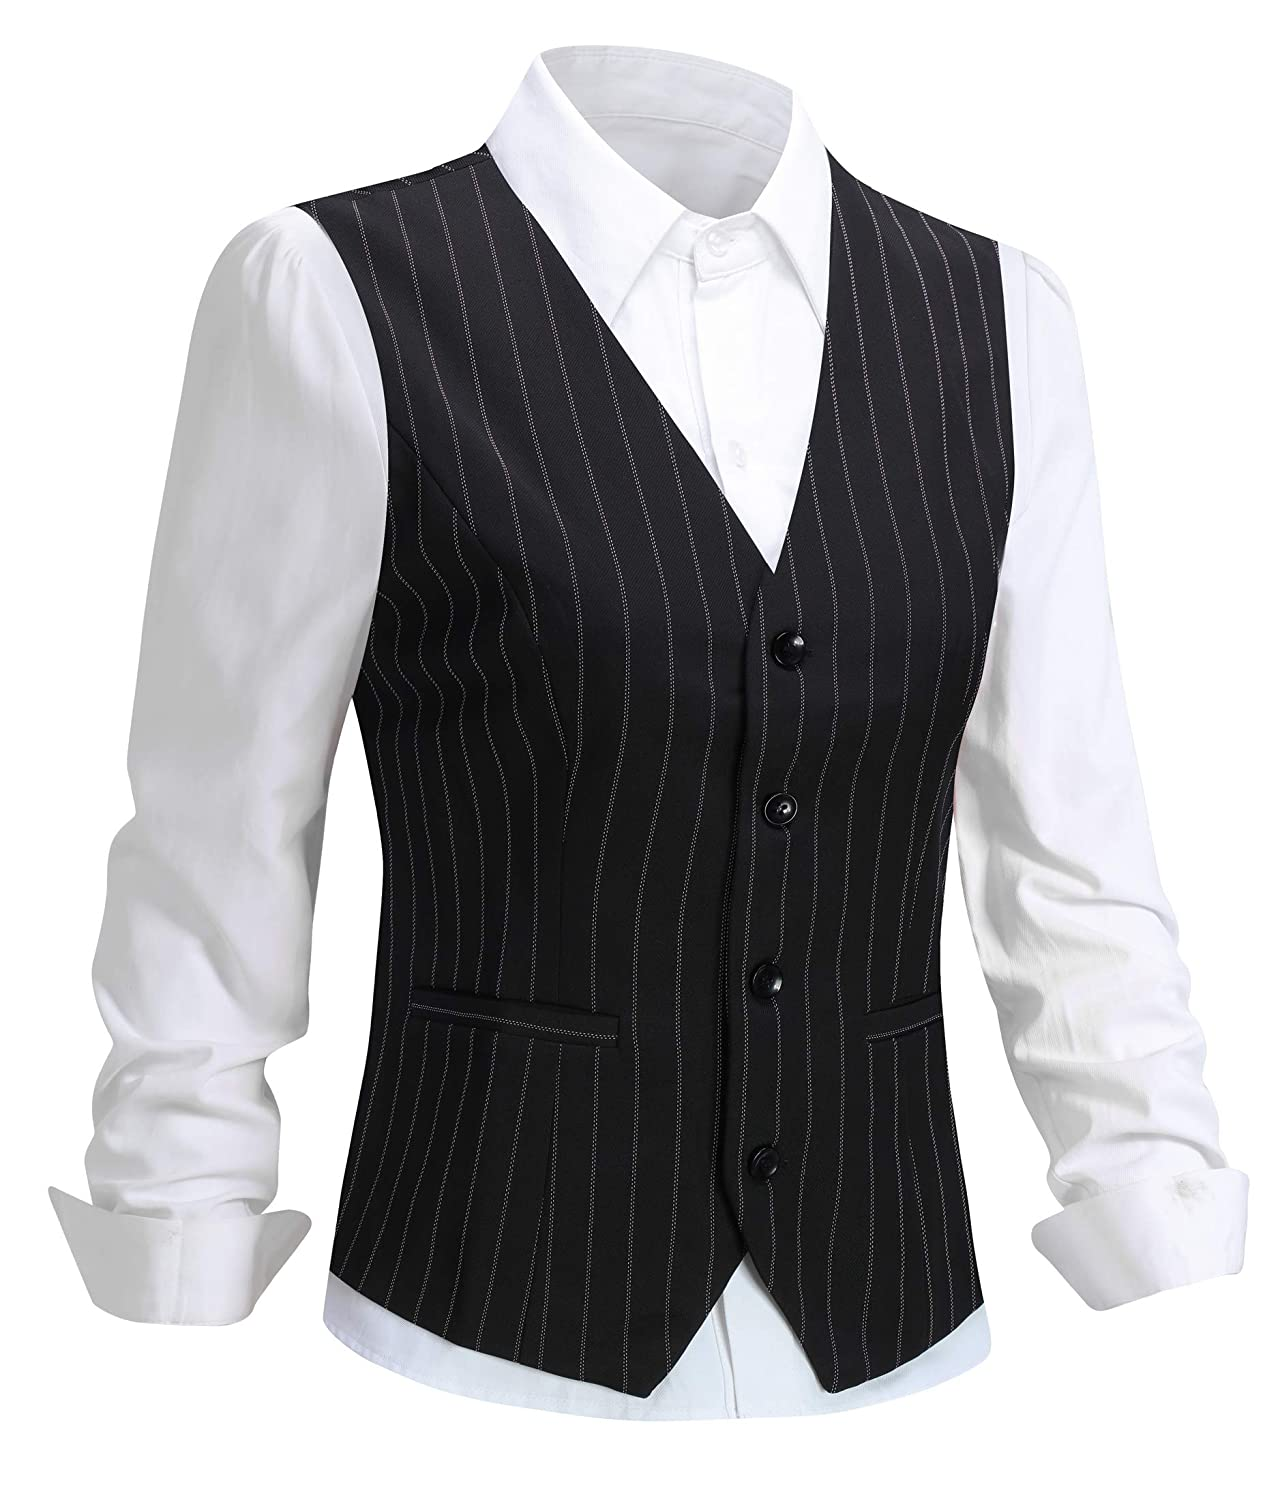 Foucome Womens Pinstripe Formal Casual Suit Slim Fit Button Down Vest Waistcoat